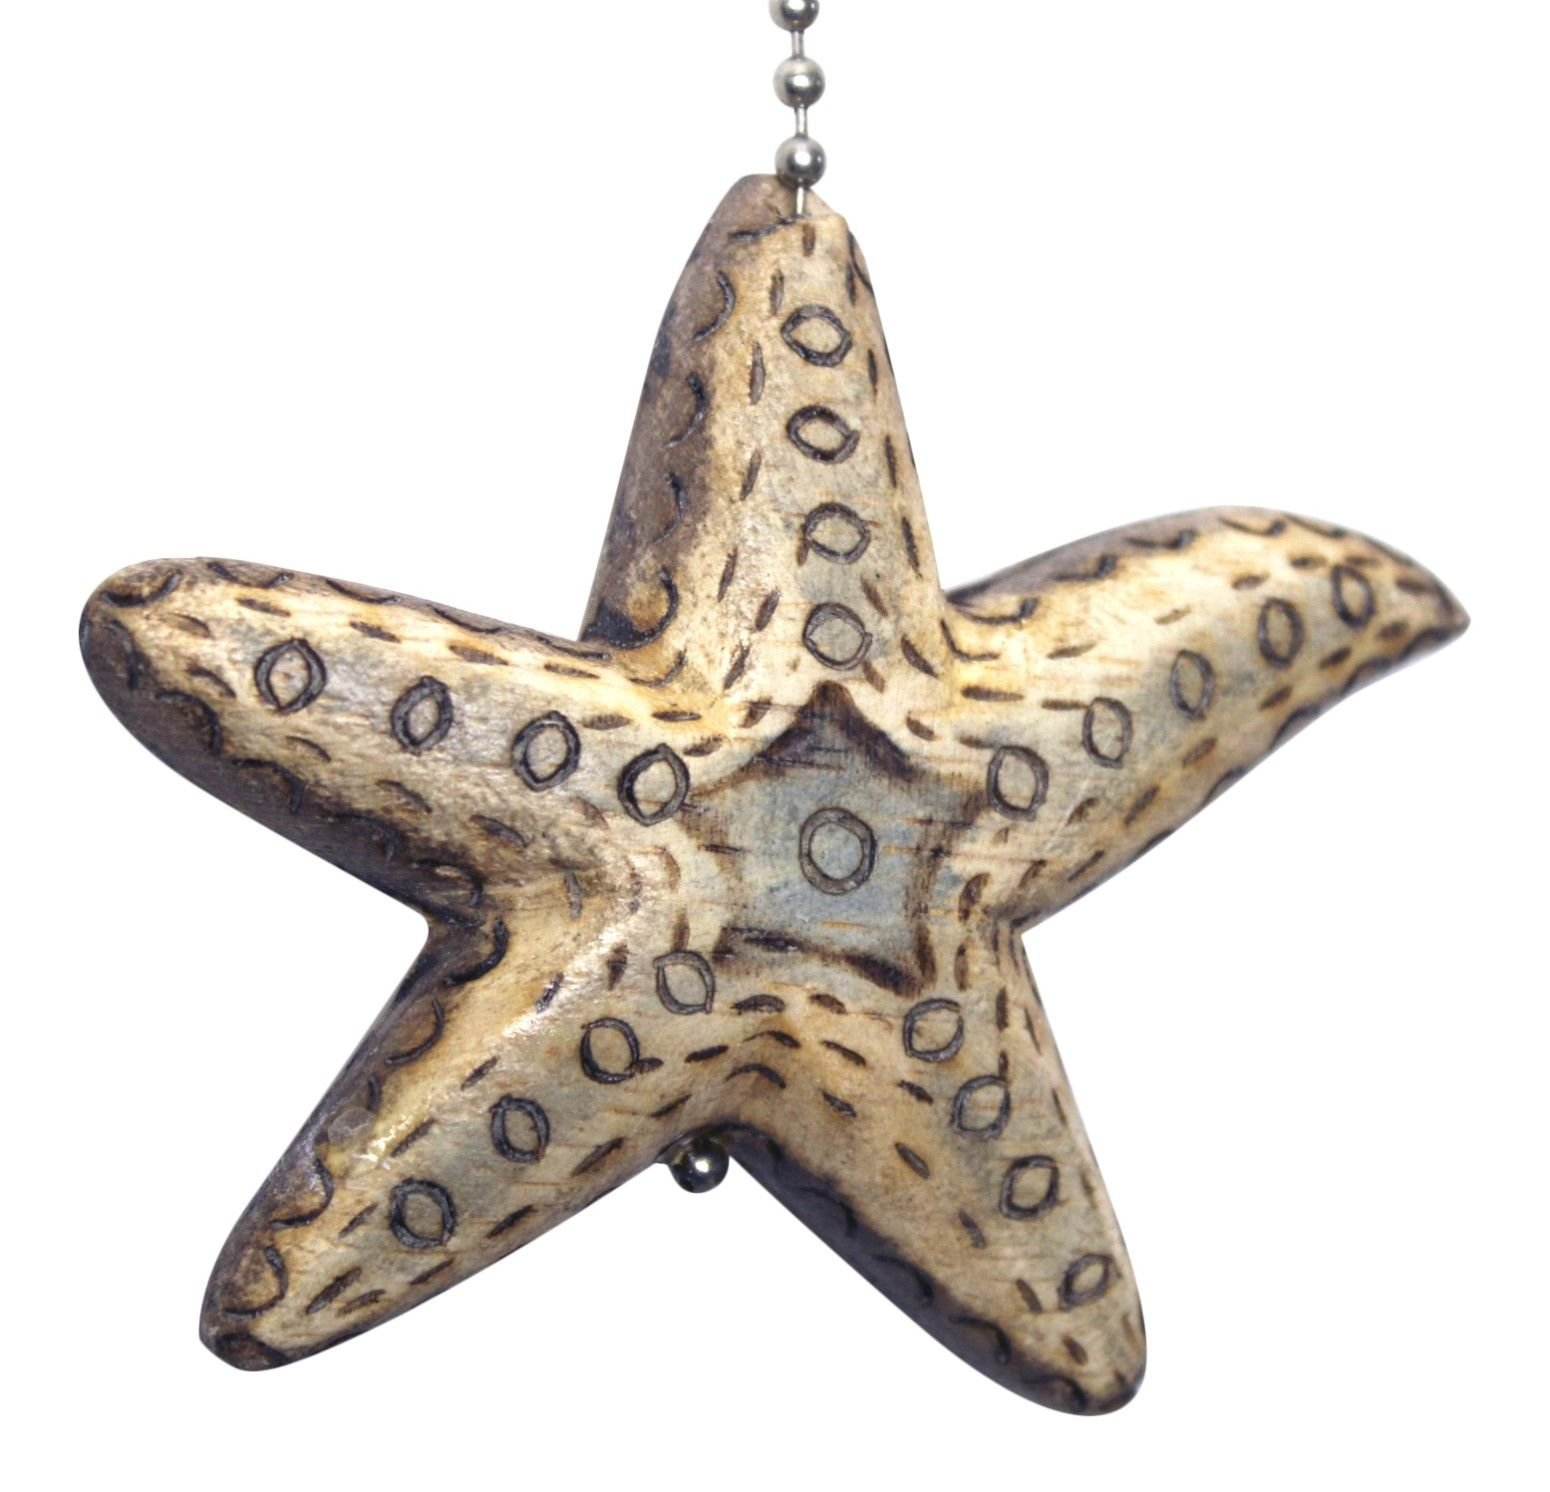 Gatton Coastal Starfish Hand Carved Wood Burned Wood Ceiling Fan Light Pull by Gatton